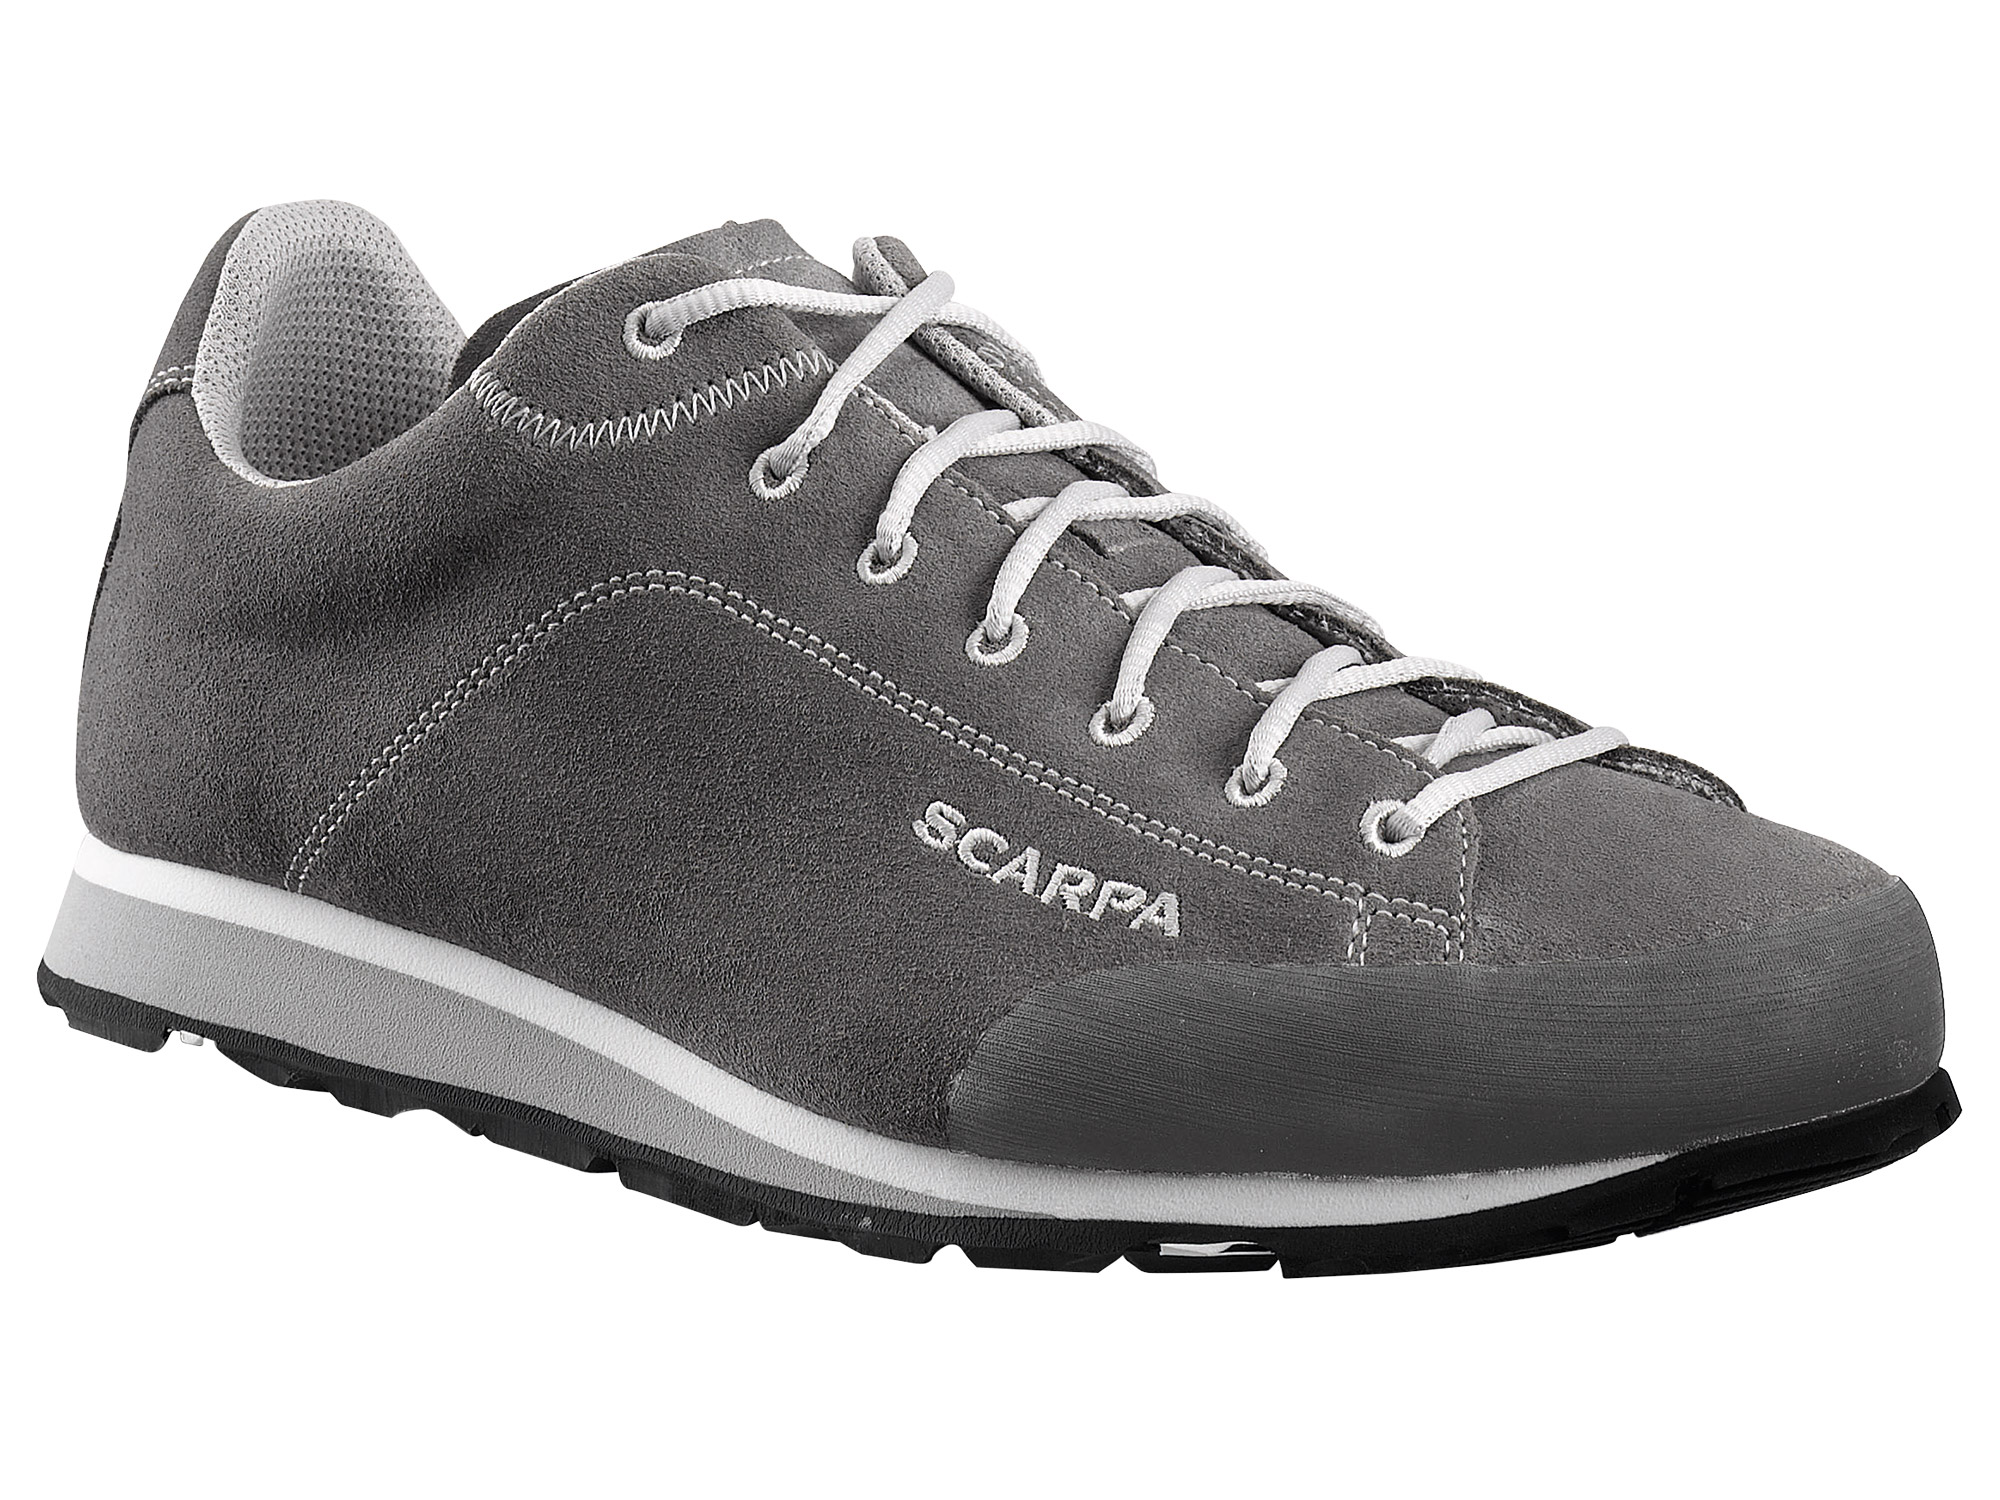 Scarpa Margarita Dark Grey-30